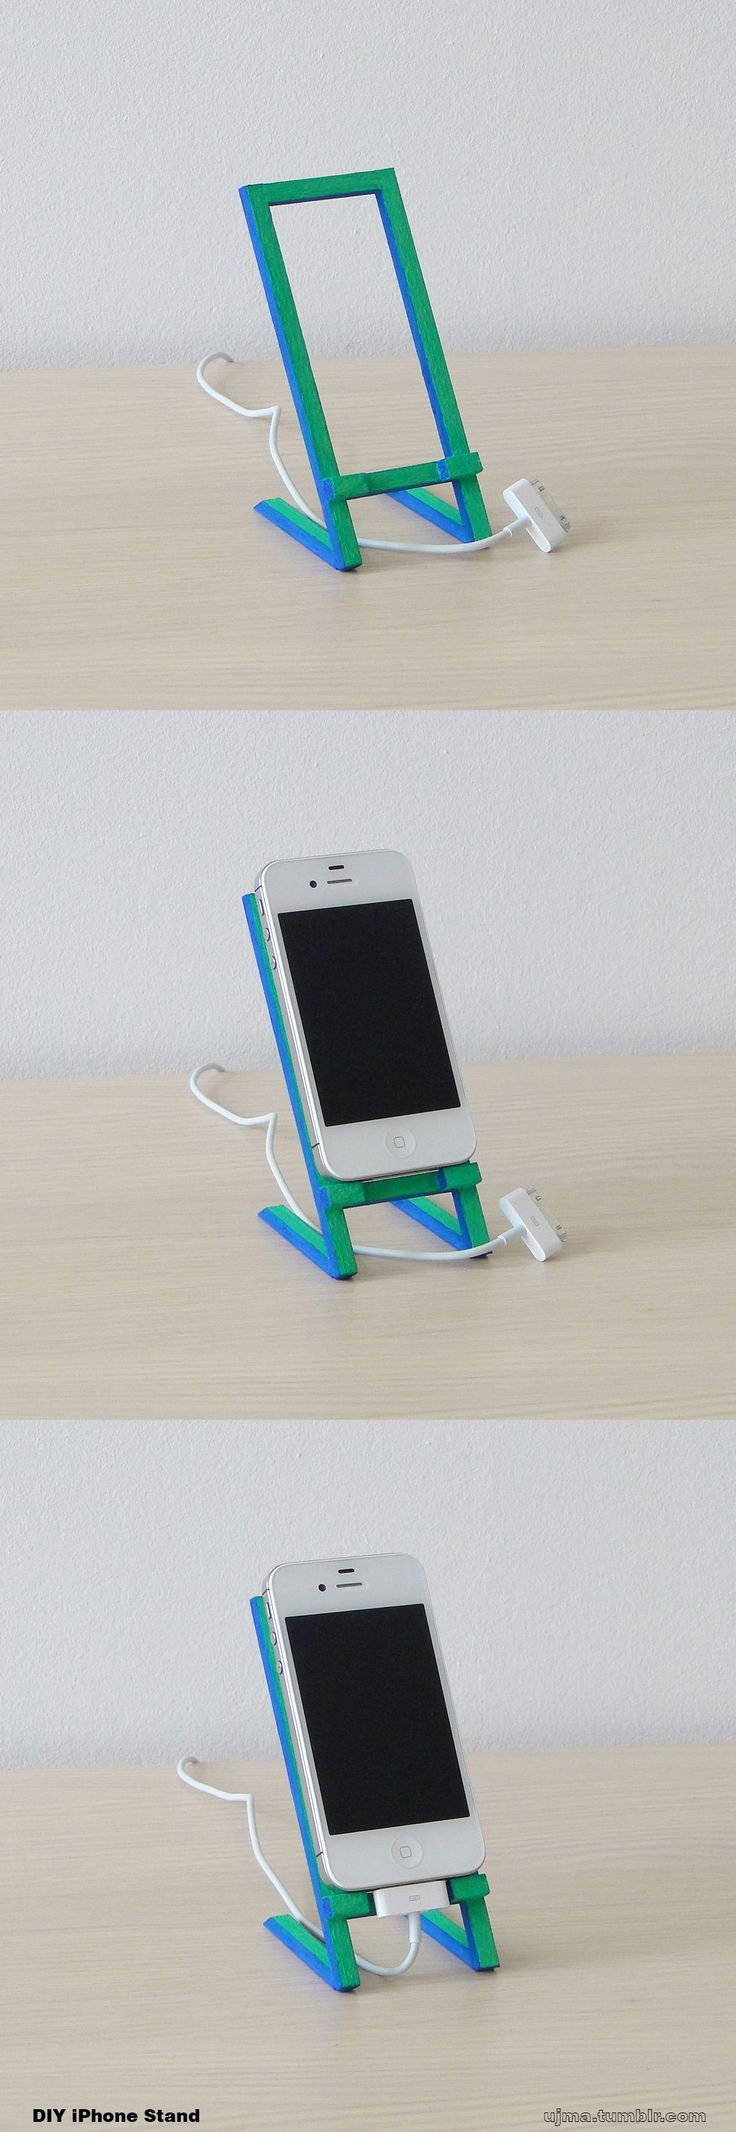 http://teds-woodworking.digimkts.com/ DYI is the best dyi woodworking signs DIY iPhone Stand made of wood.